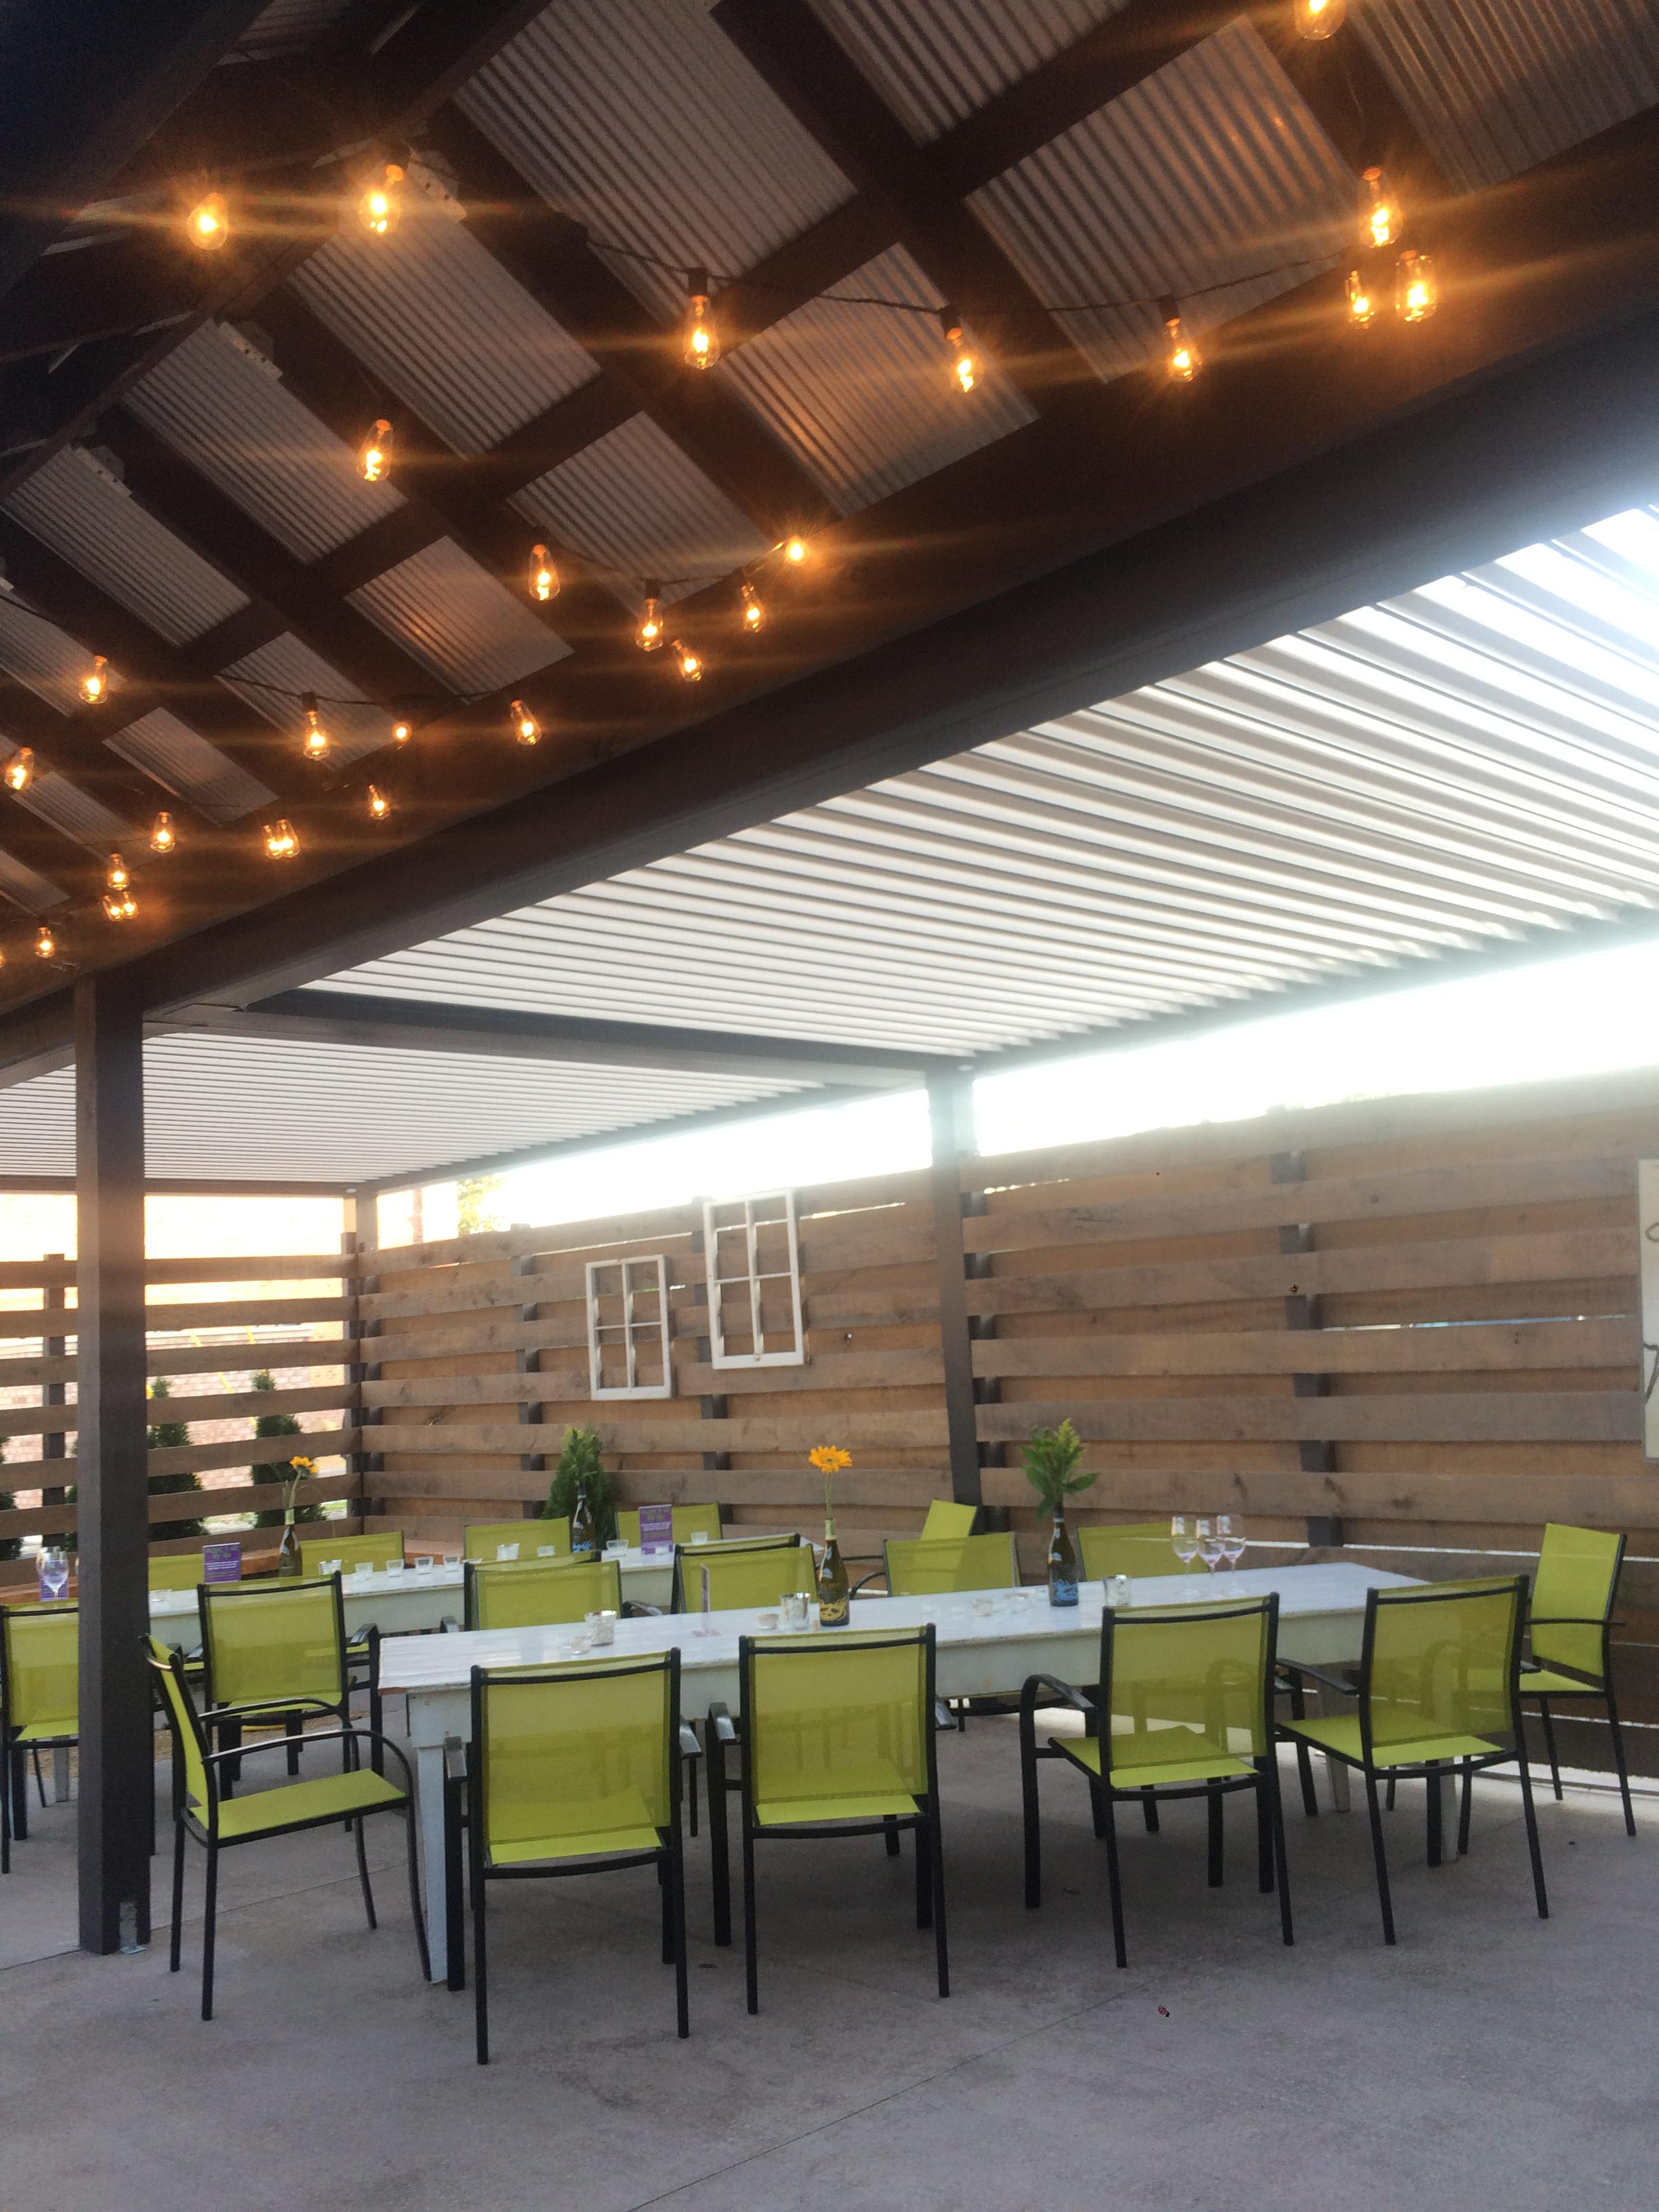 Carmel, IN - Peace Water Winery - Patio cover - Attached